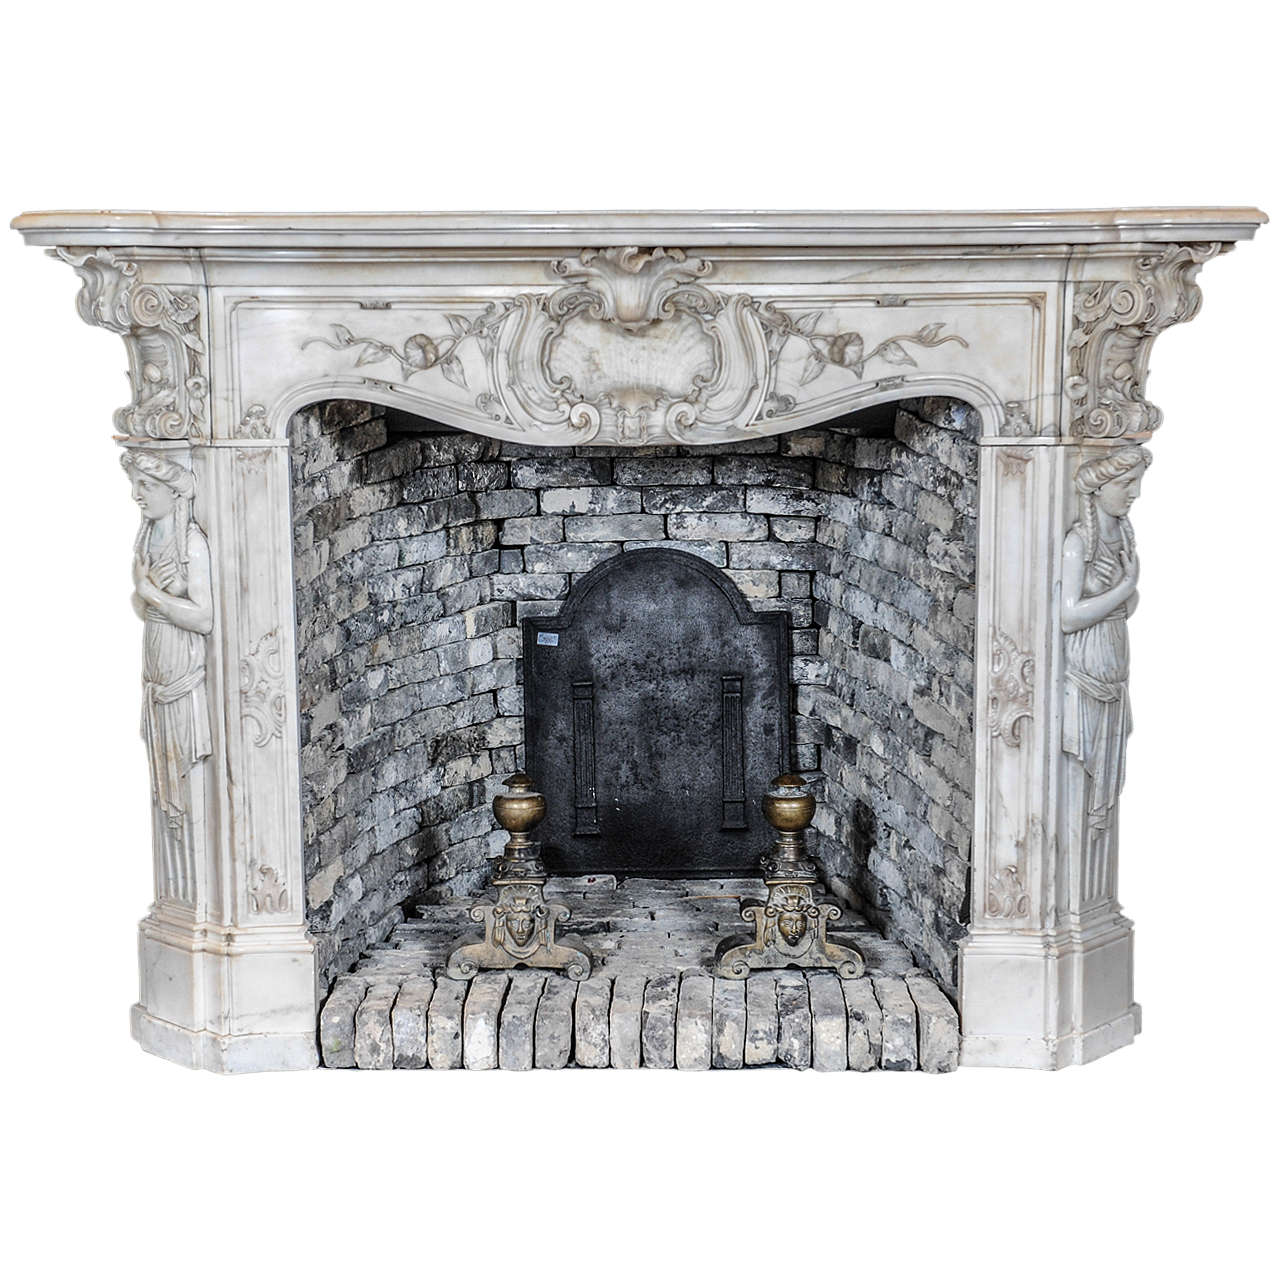 Carved 19th century french rococo statuario marble fireplace or mantel piece at 1stdibs - Fireplace mantel piece ...